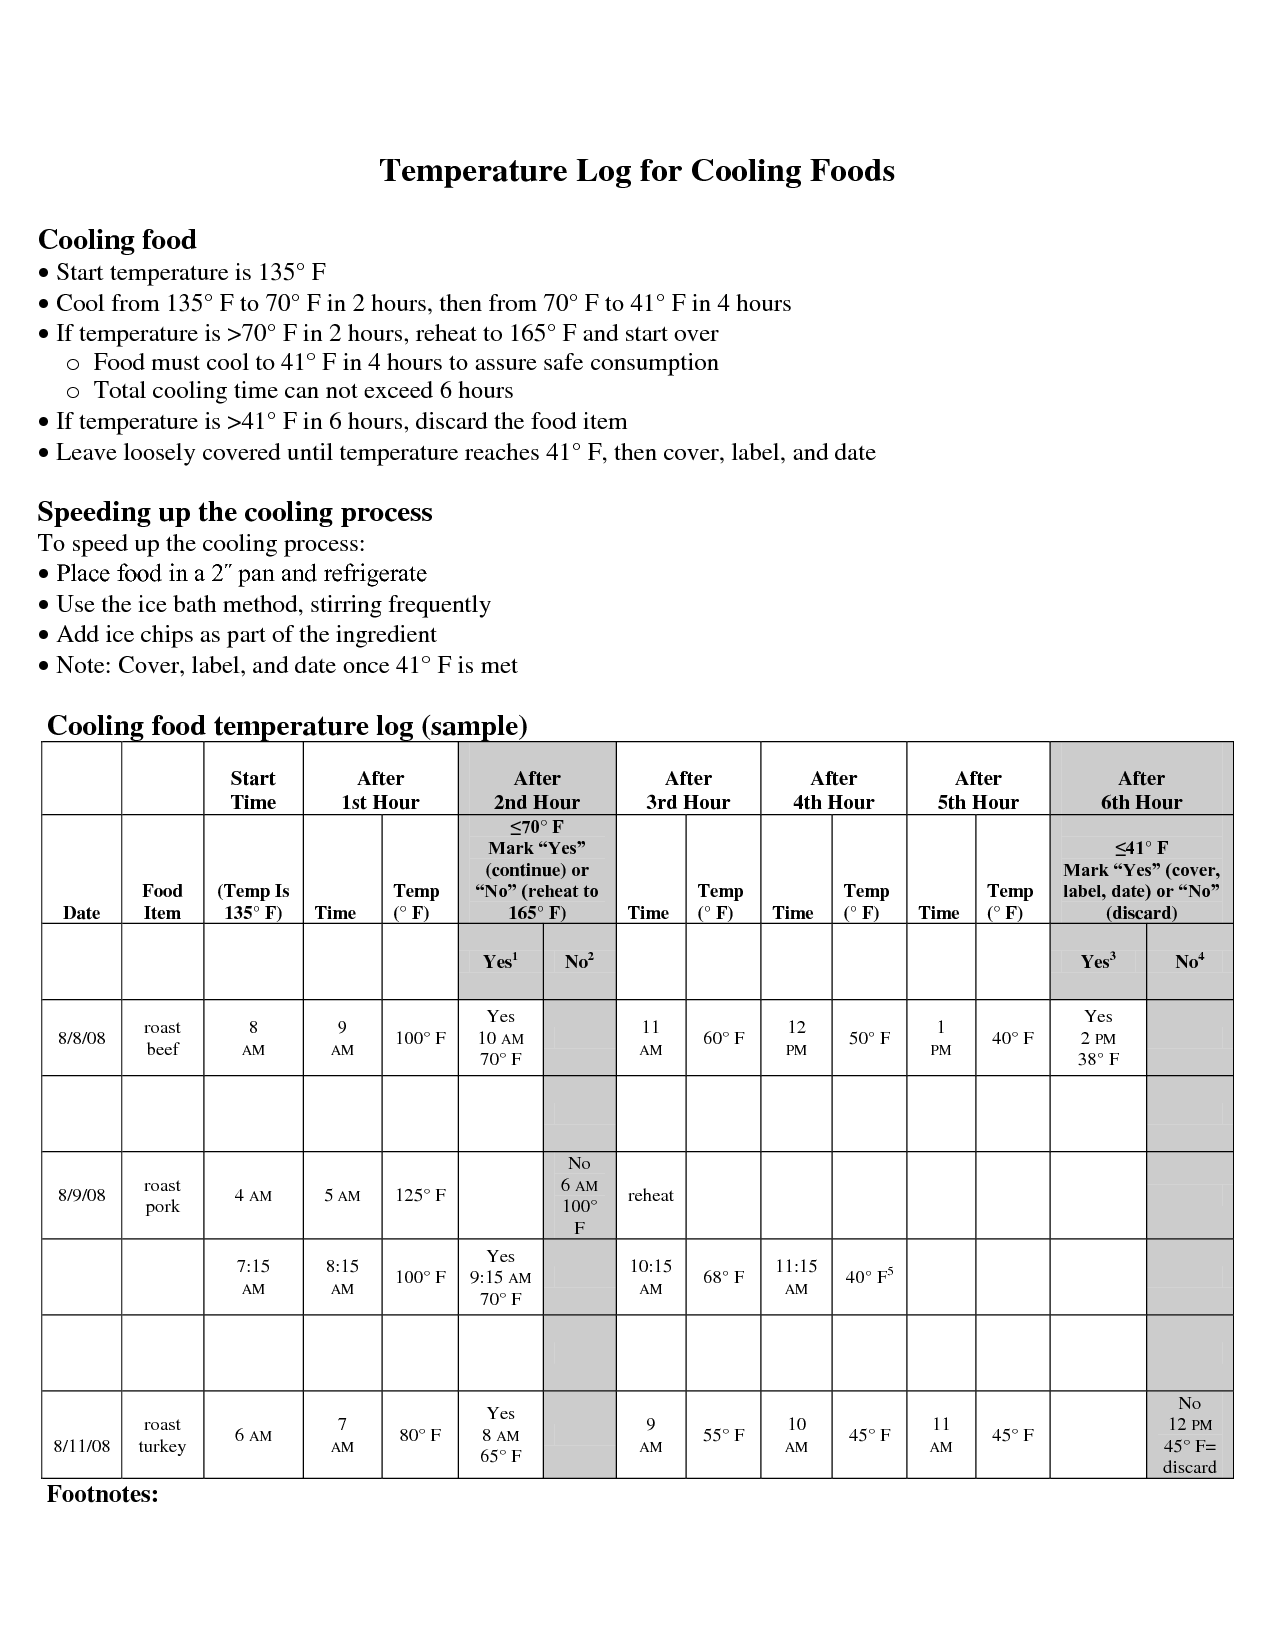 haccp plan template food safety temperature log http www docstoc